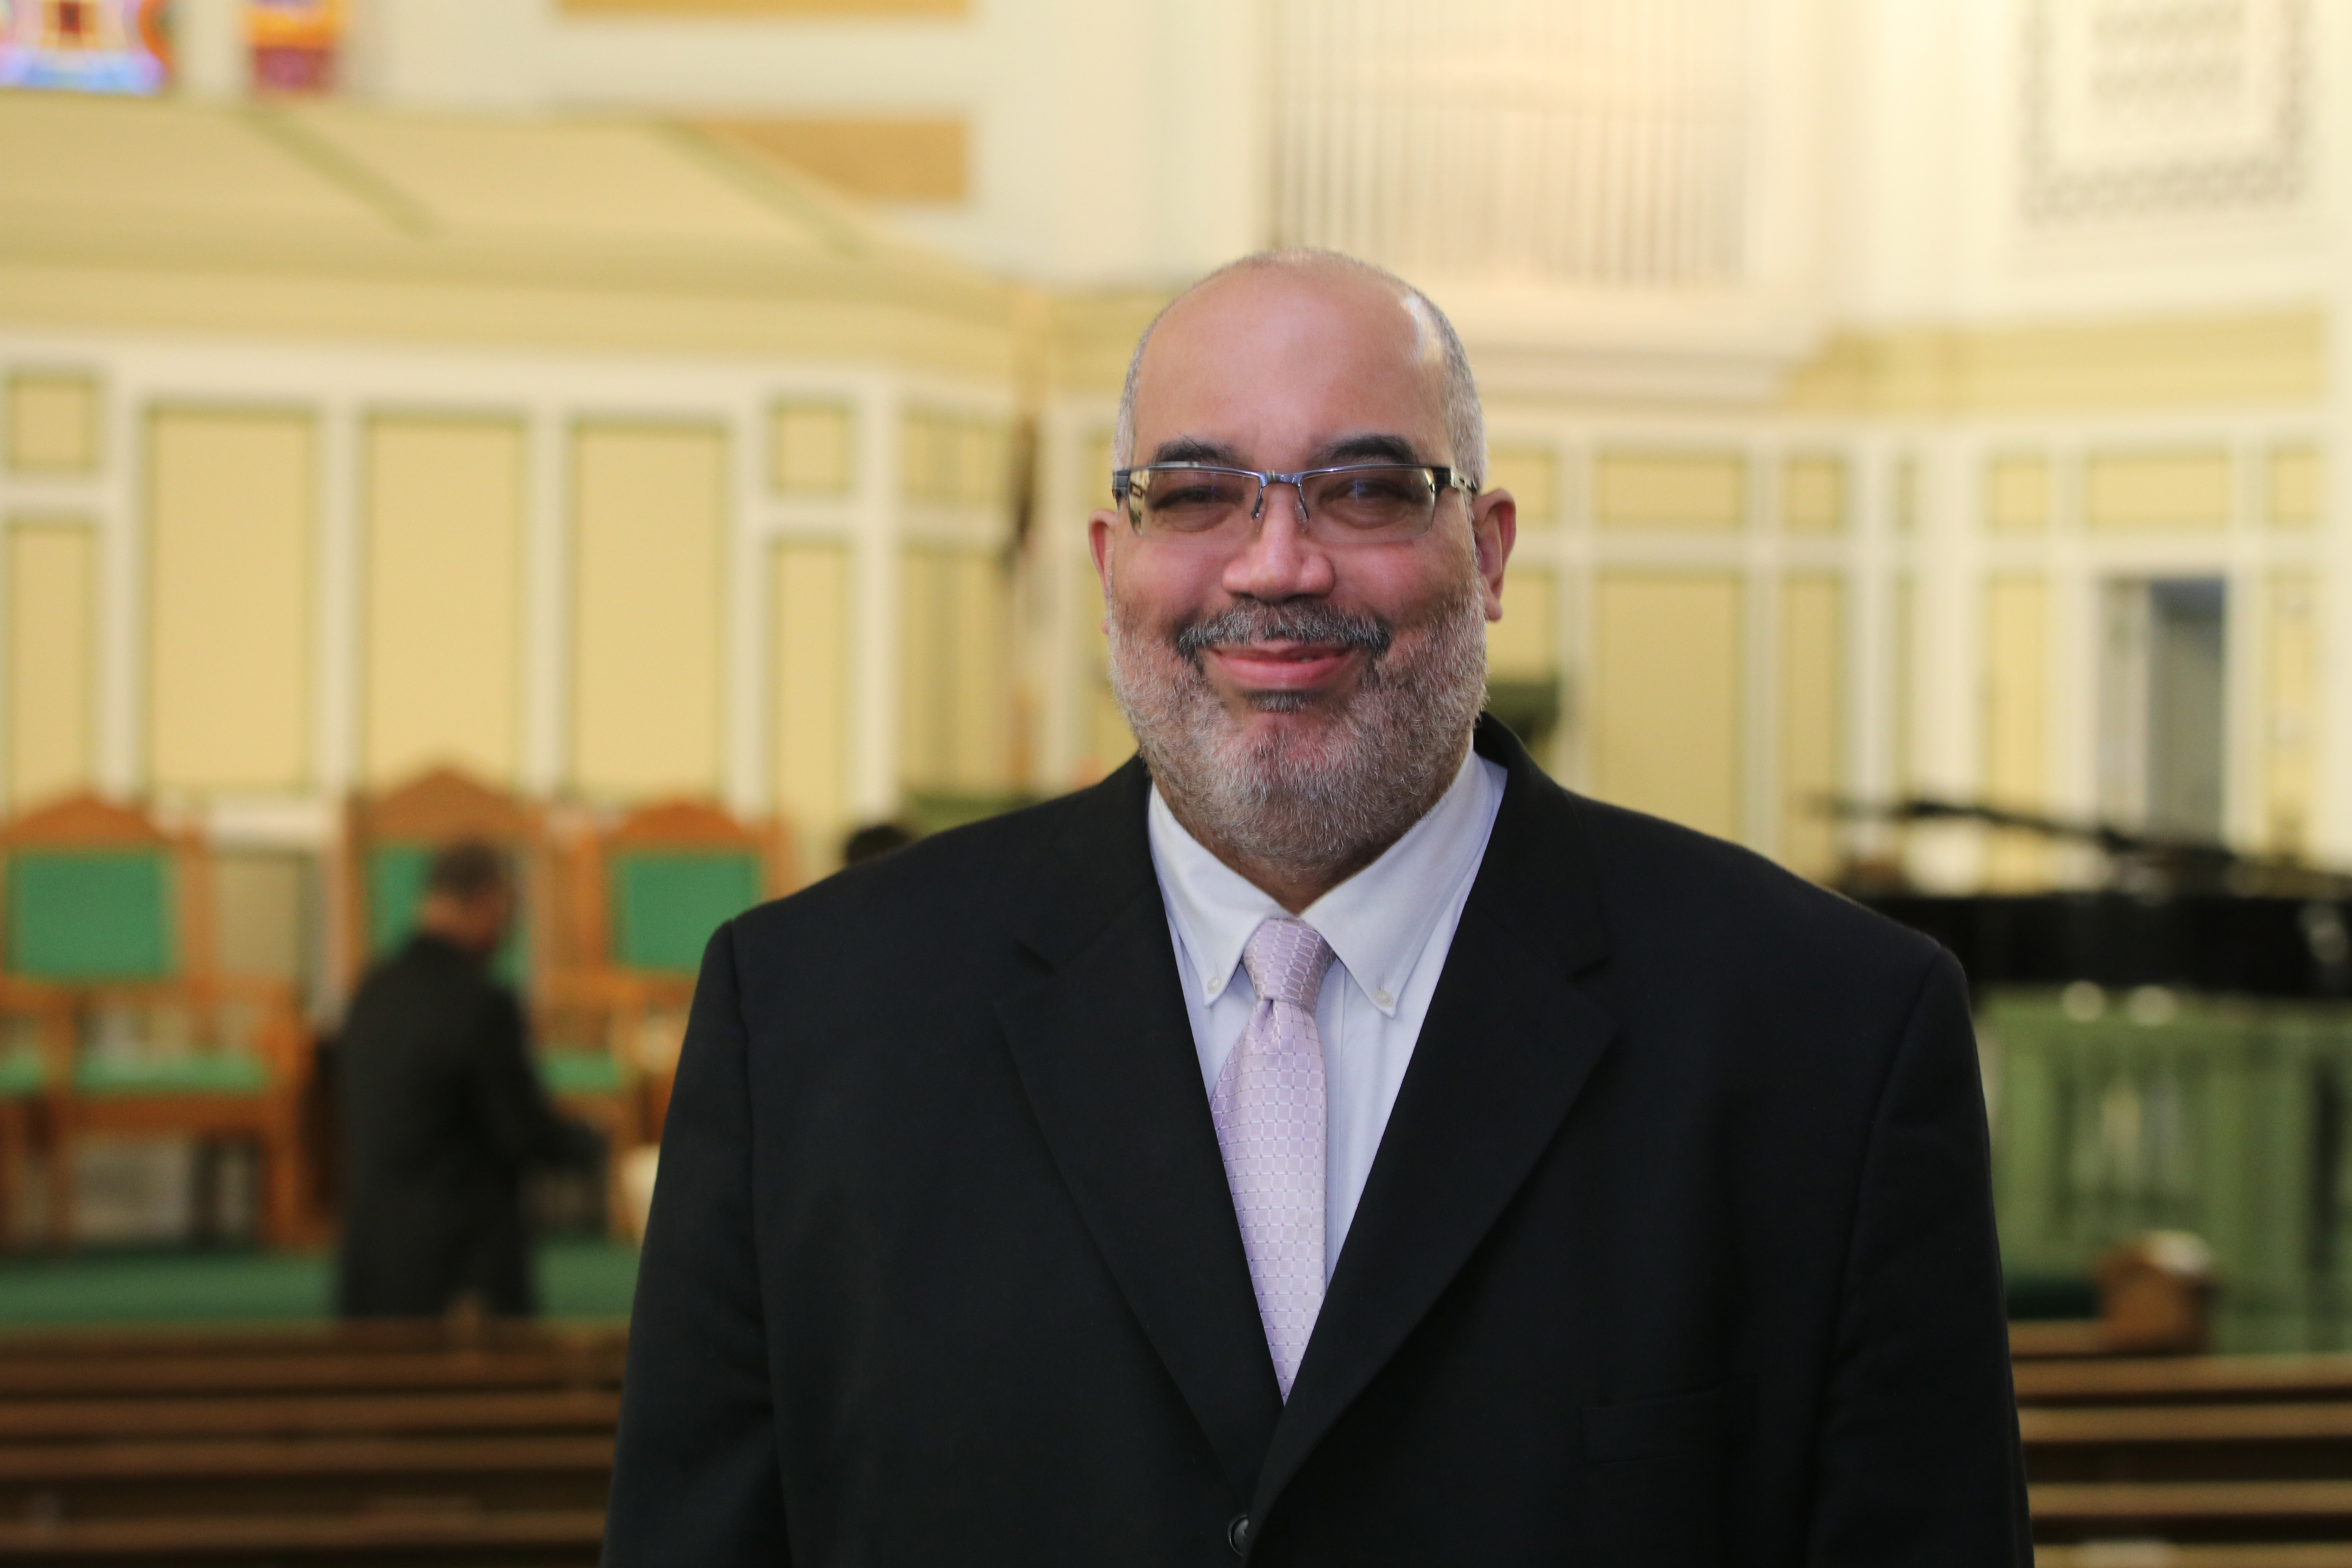 Rev. Dale Weathers